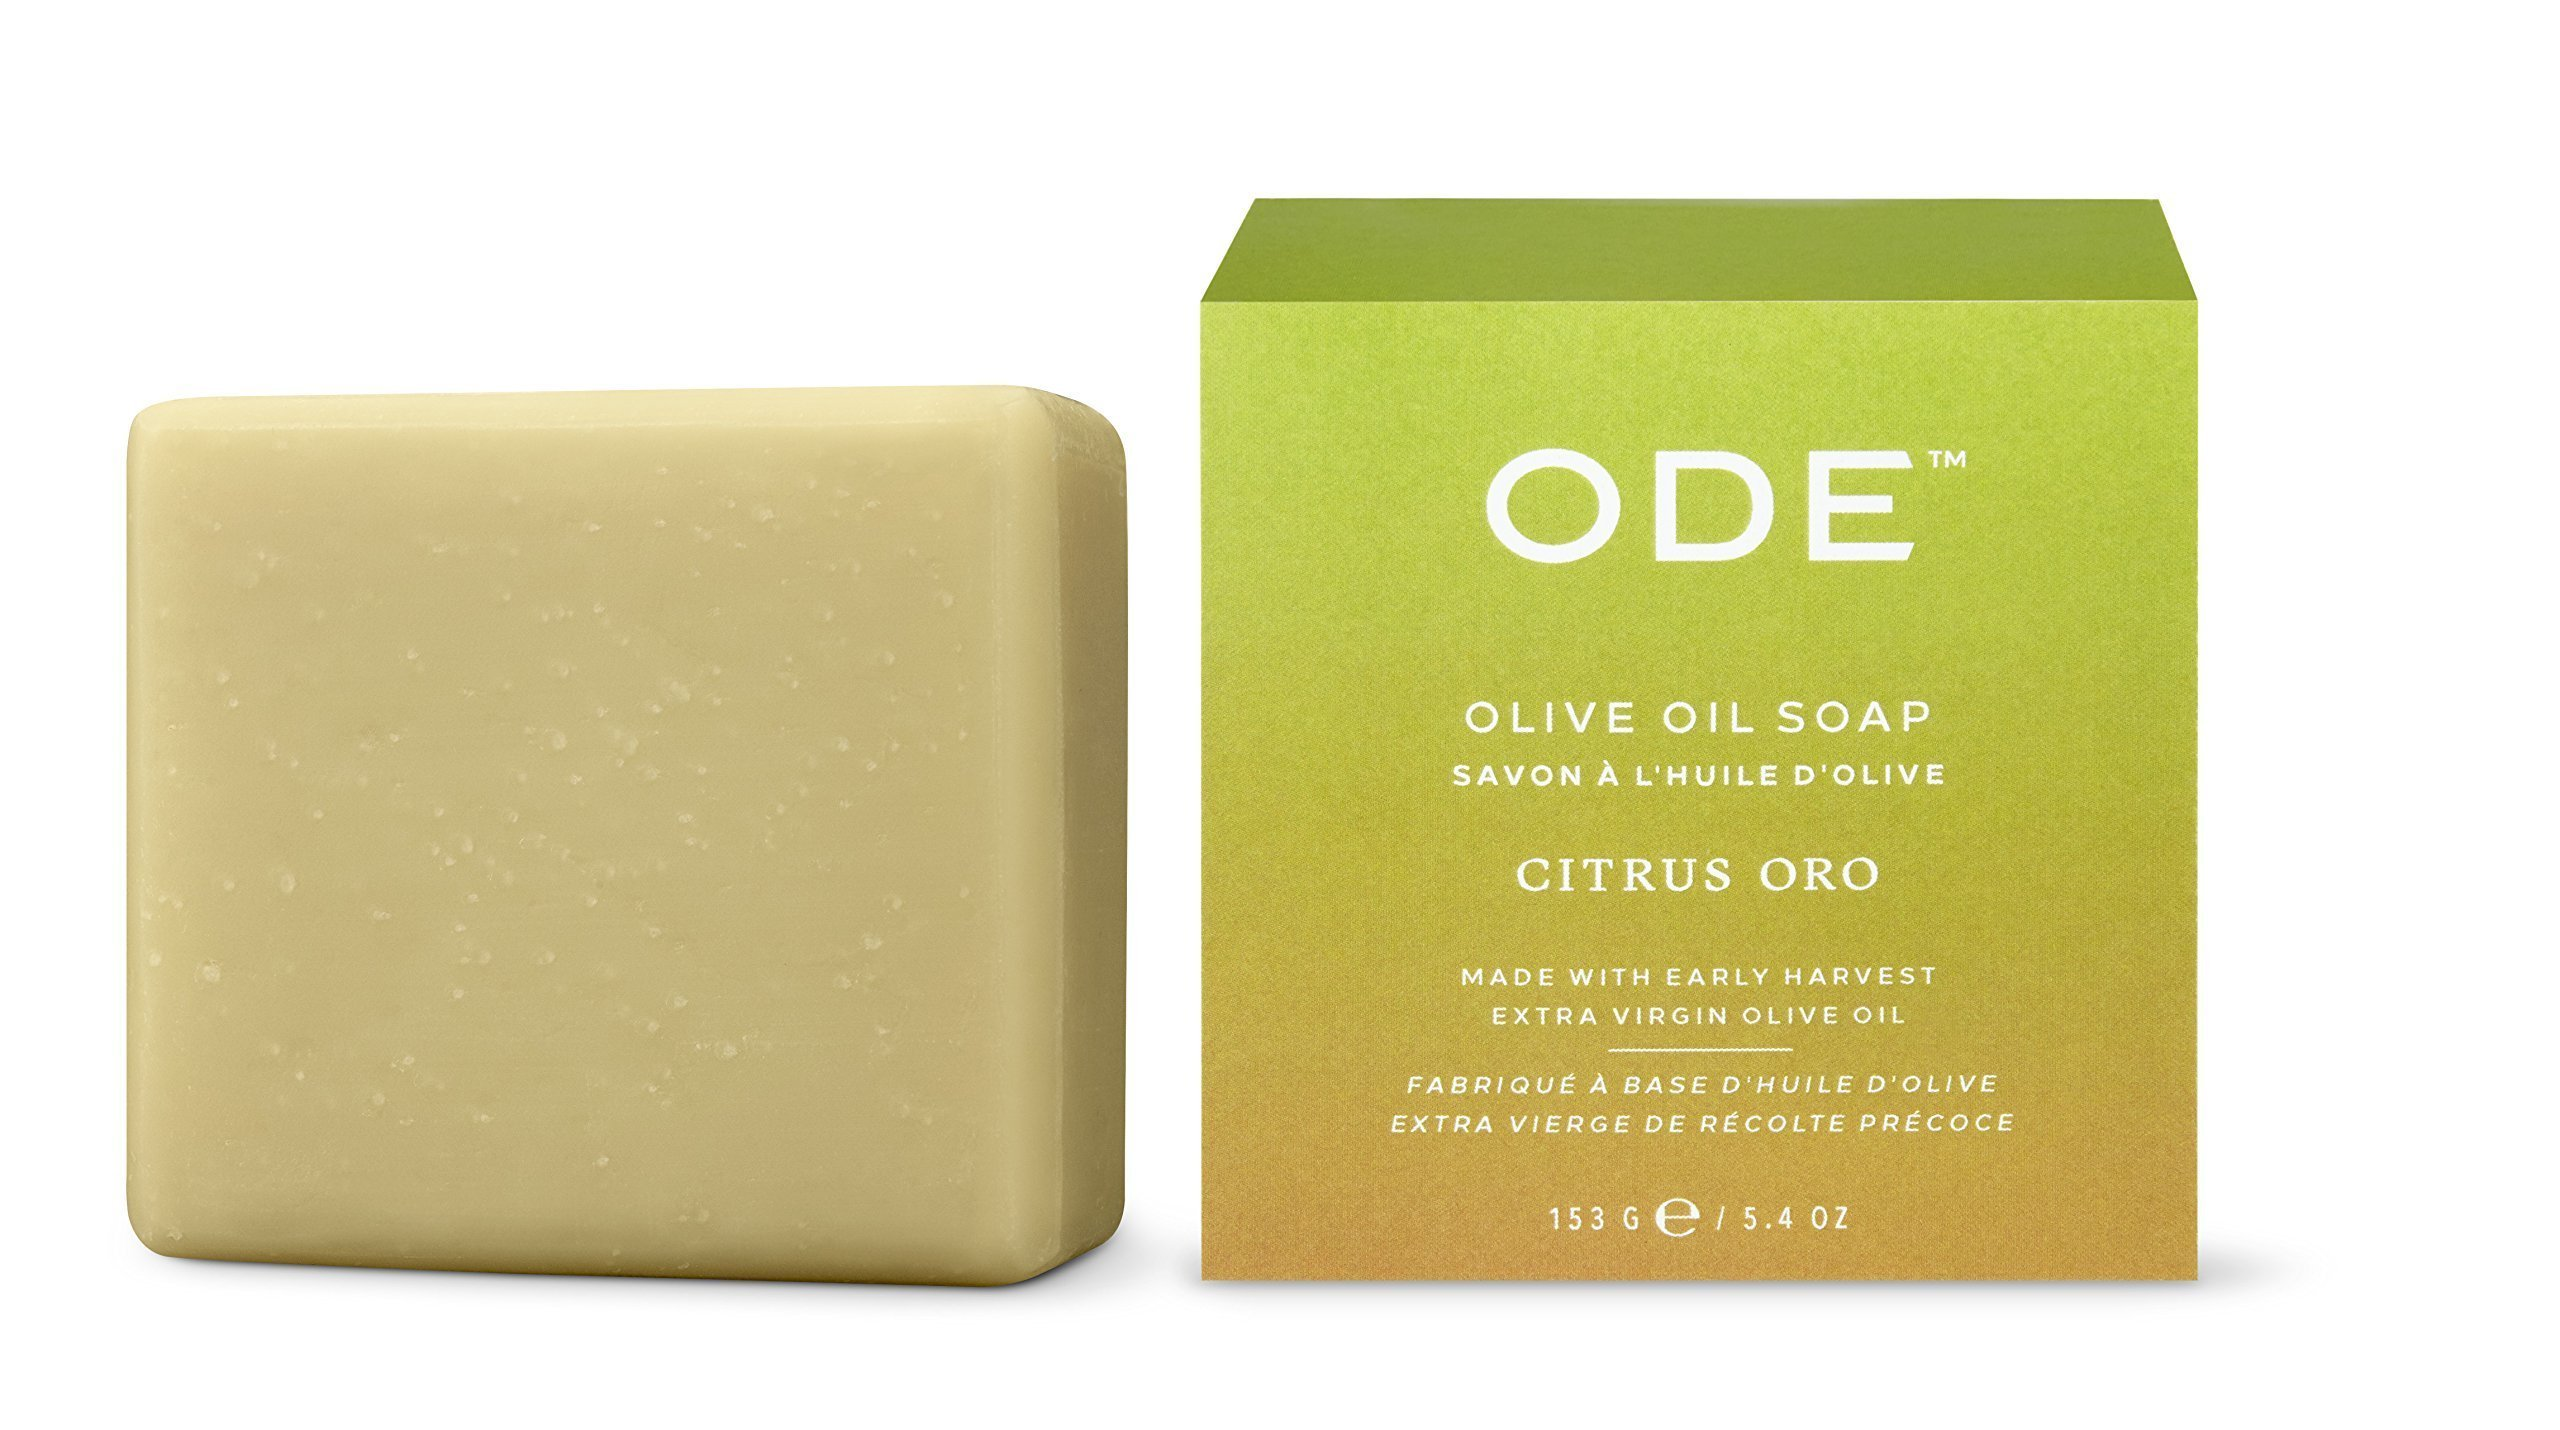 ODE natural beauty - Citrus Oro Olive Oil Soap